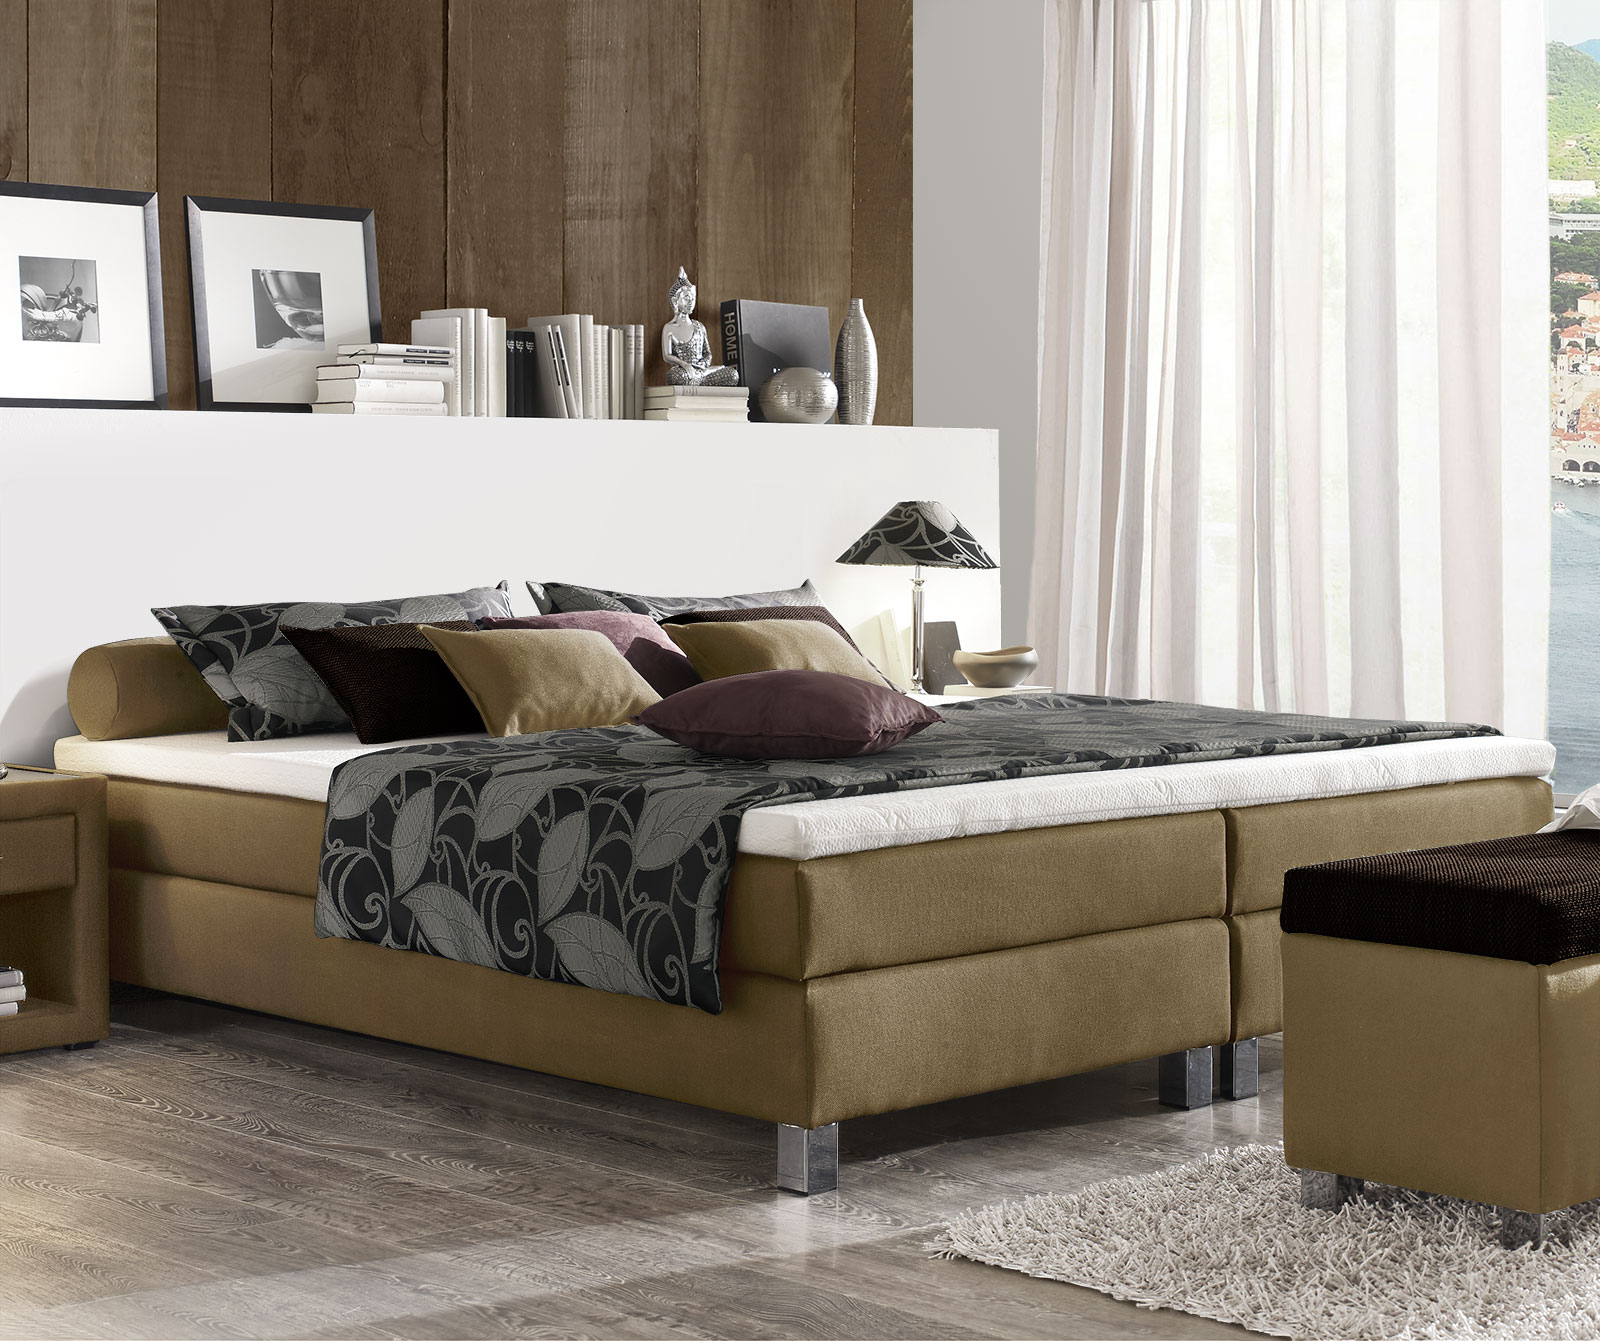 boxspringbett ohne metall neuesten design kollektionen f r die familien. Black Bedroom Furniture Sets. Home Design Ideas